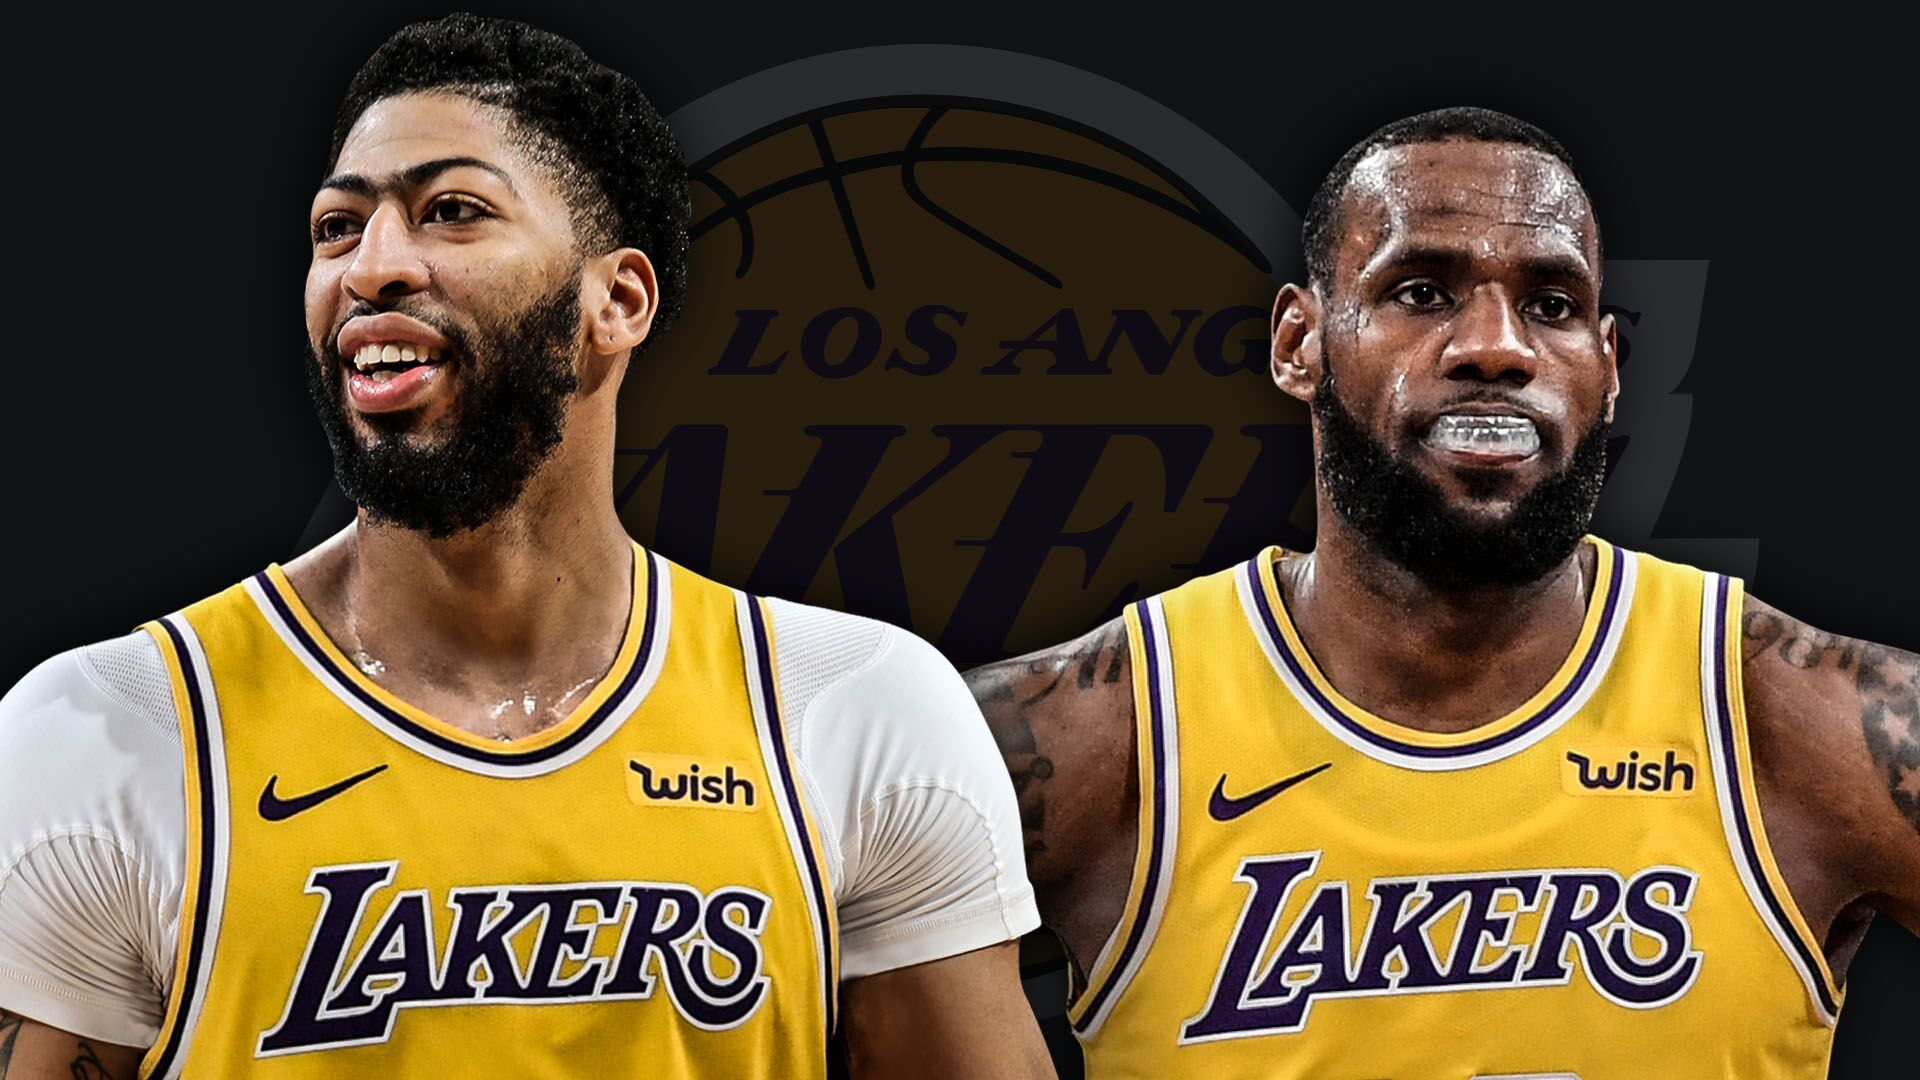 Los Angeles Lakers given TV broadcast priority on NBA schedule